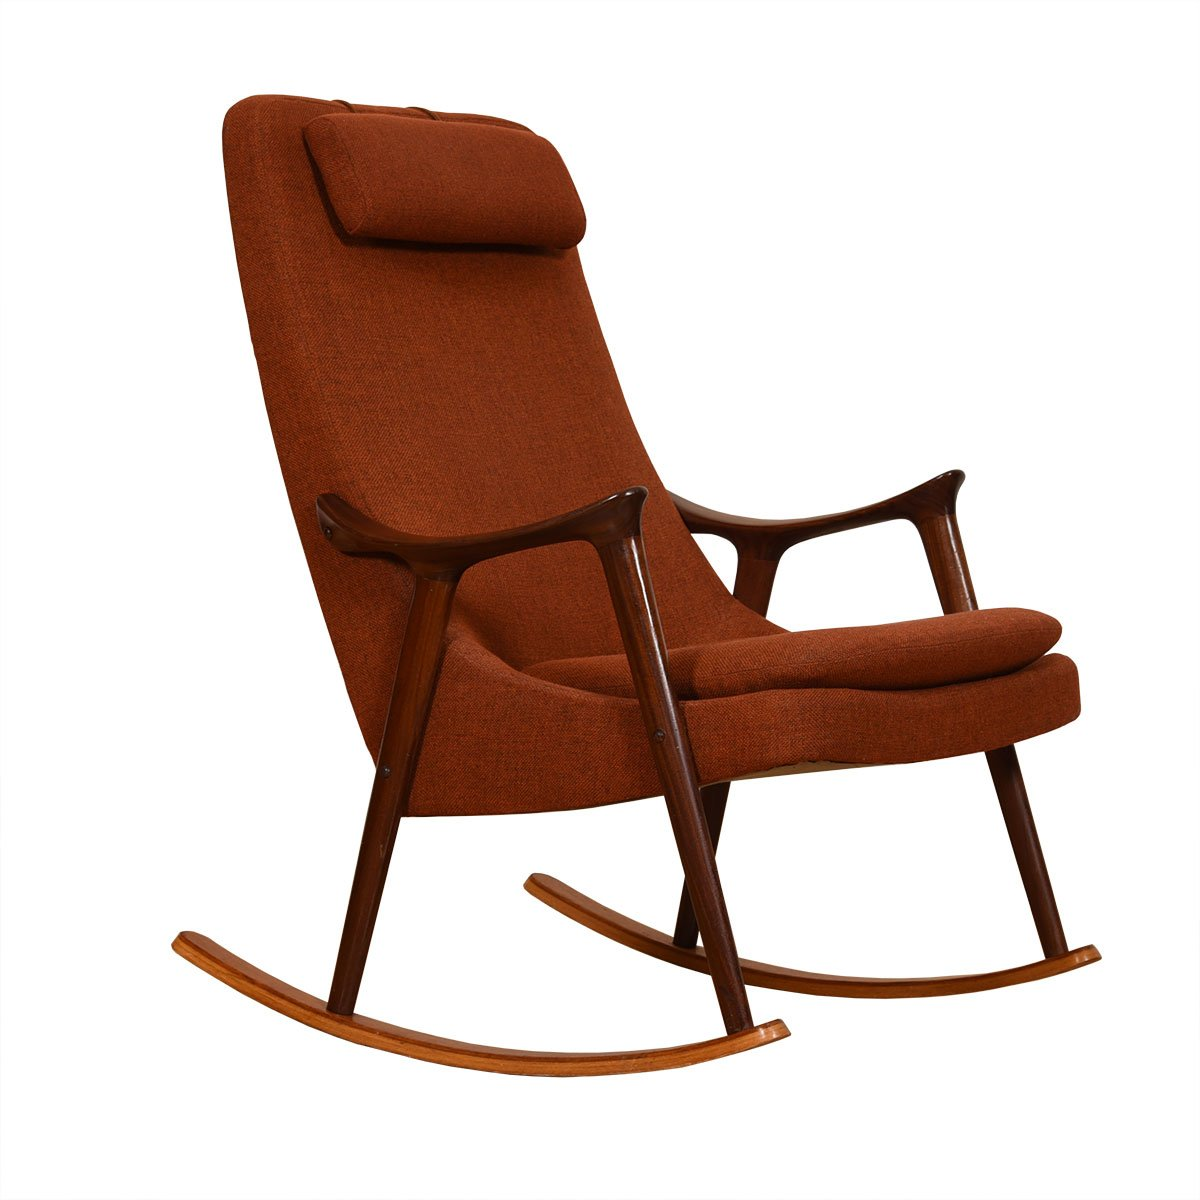 Danish Modern Teak 'Burnt Orange' Rocking Chair